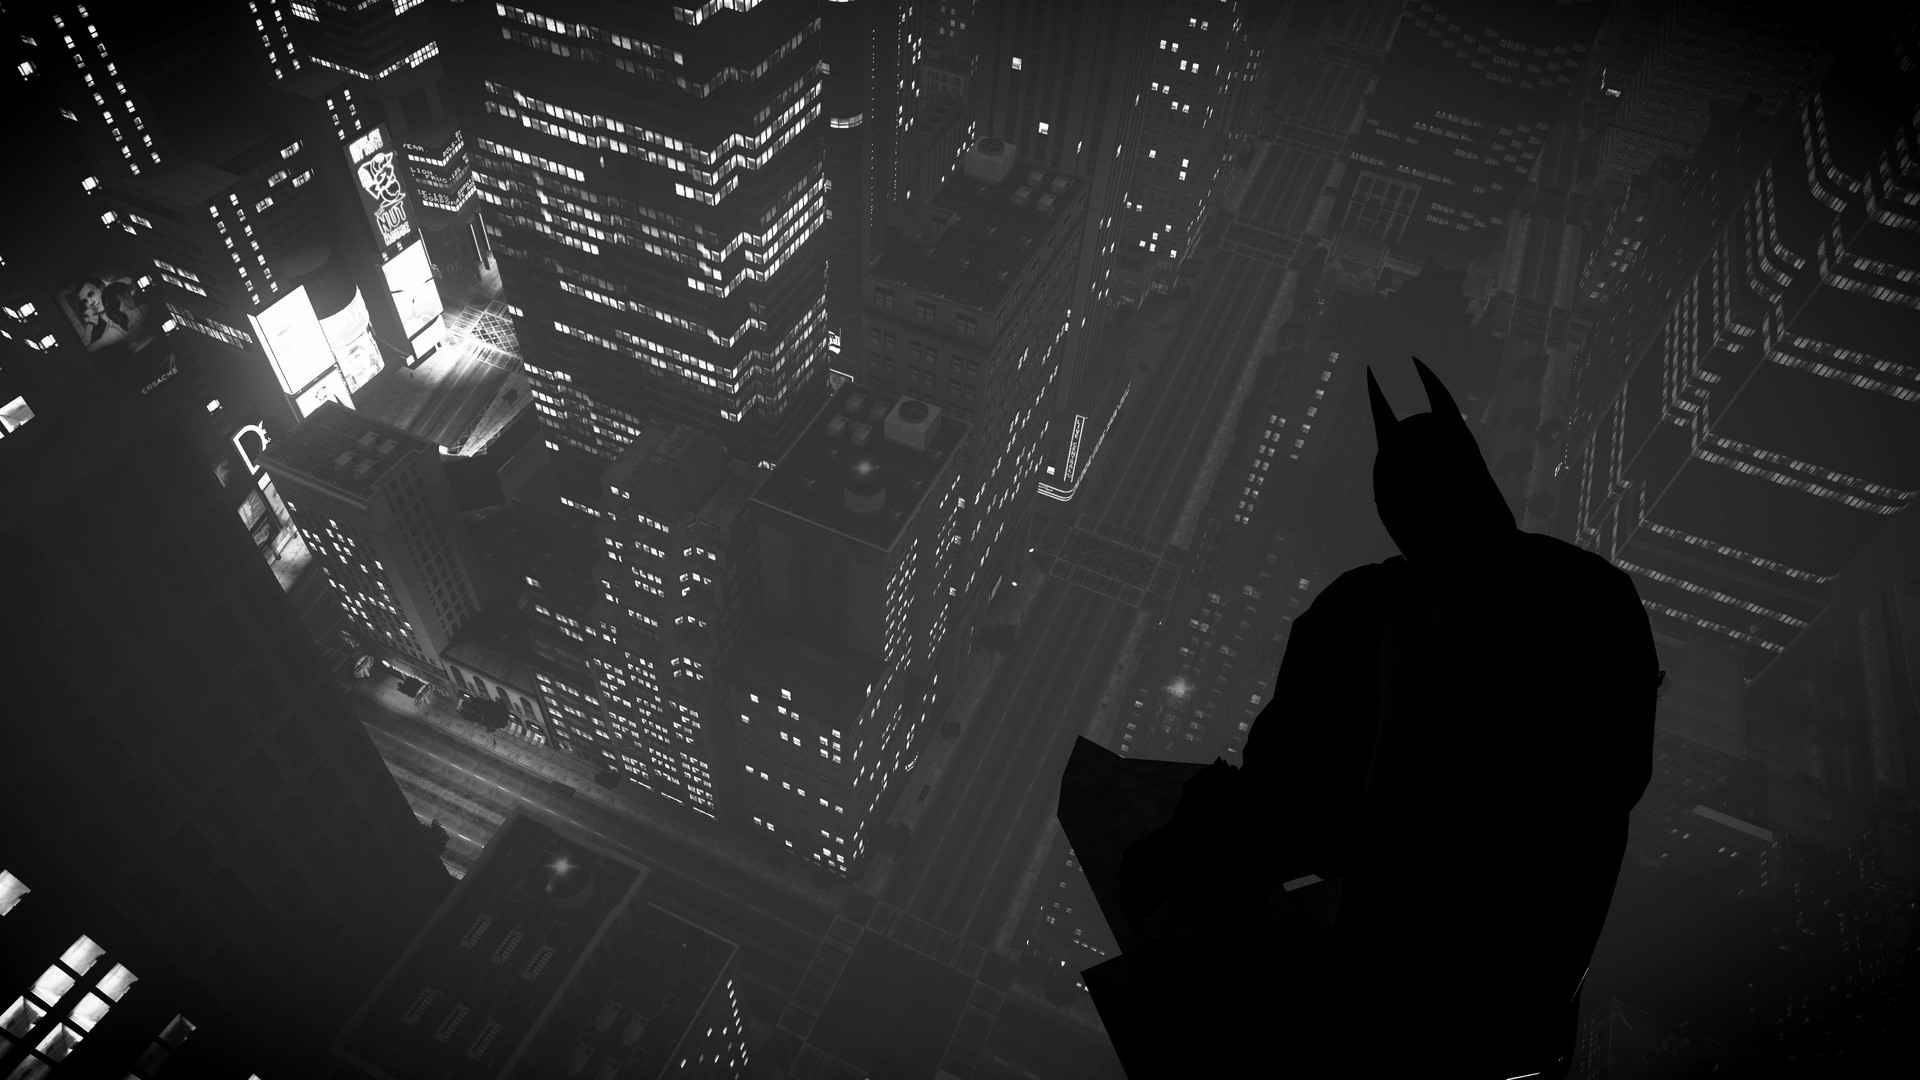 Batman over Gotham City